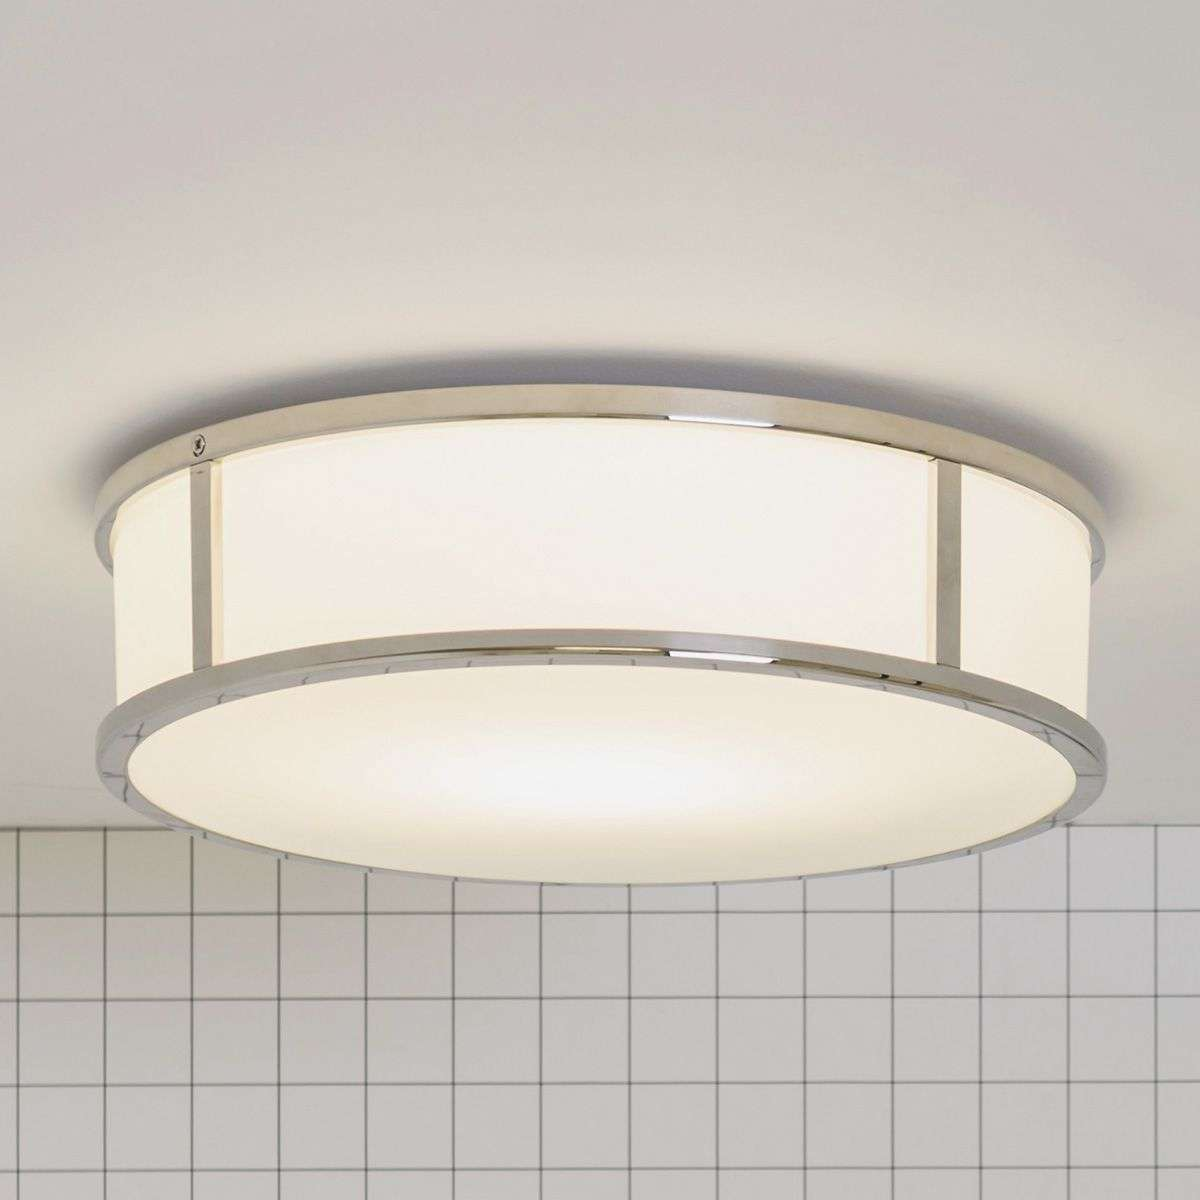 Mashiko round 300 bathroom ceiling light for Bathroom ceiling lights